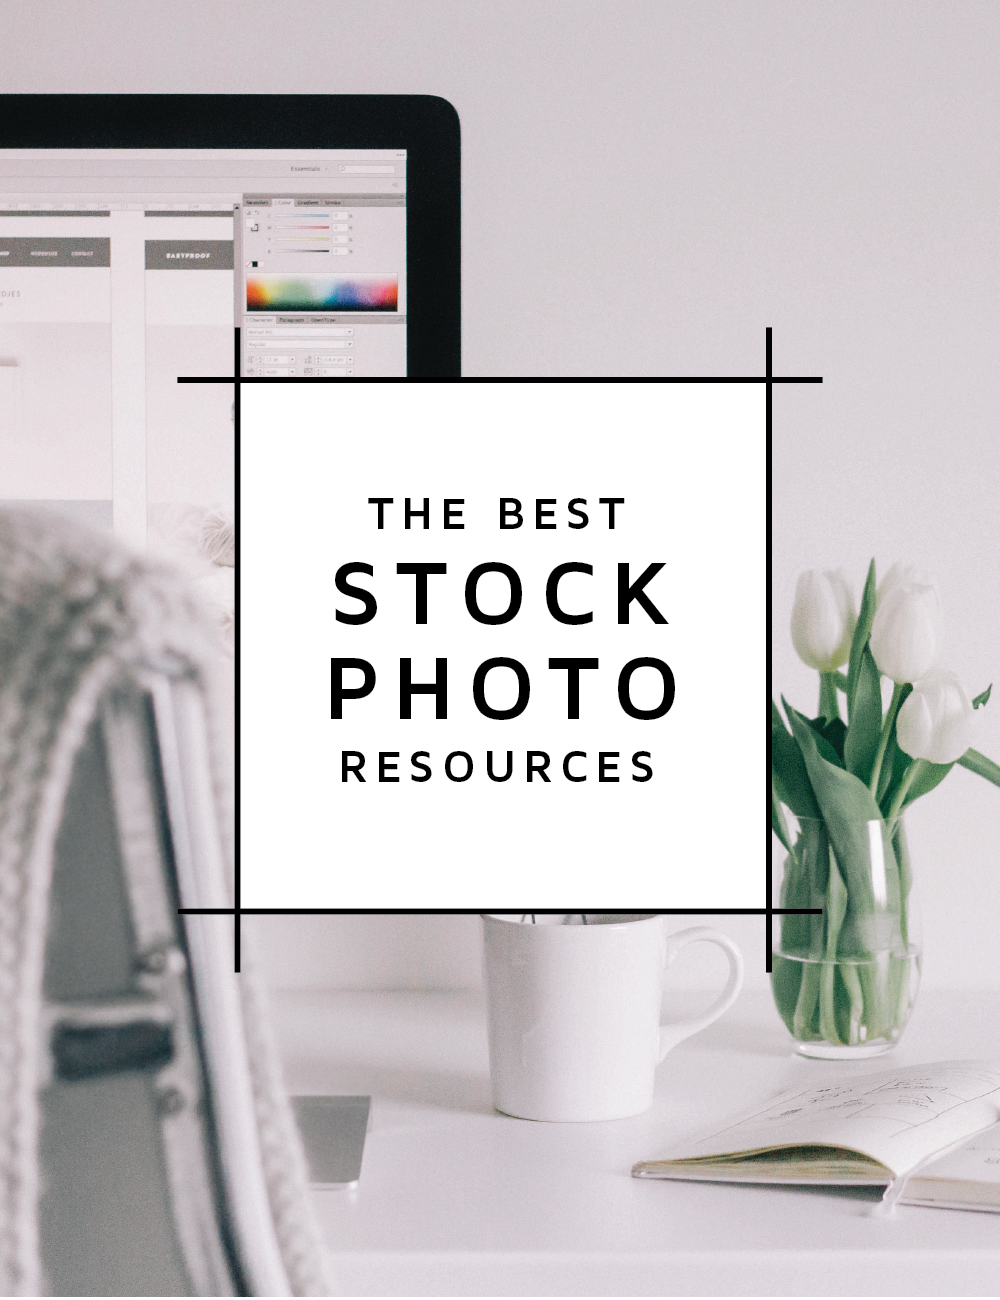 A blog post about the best stock photo resources